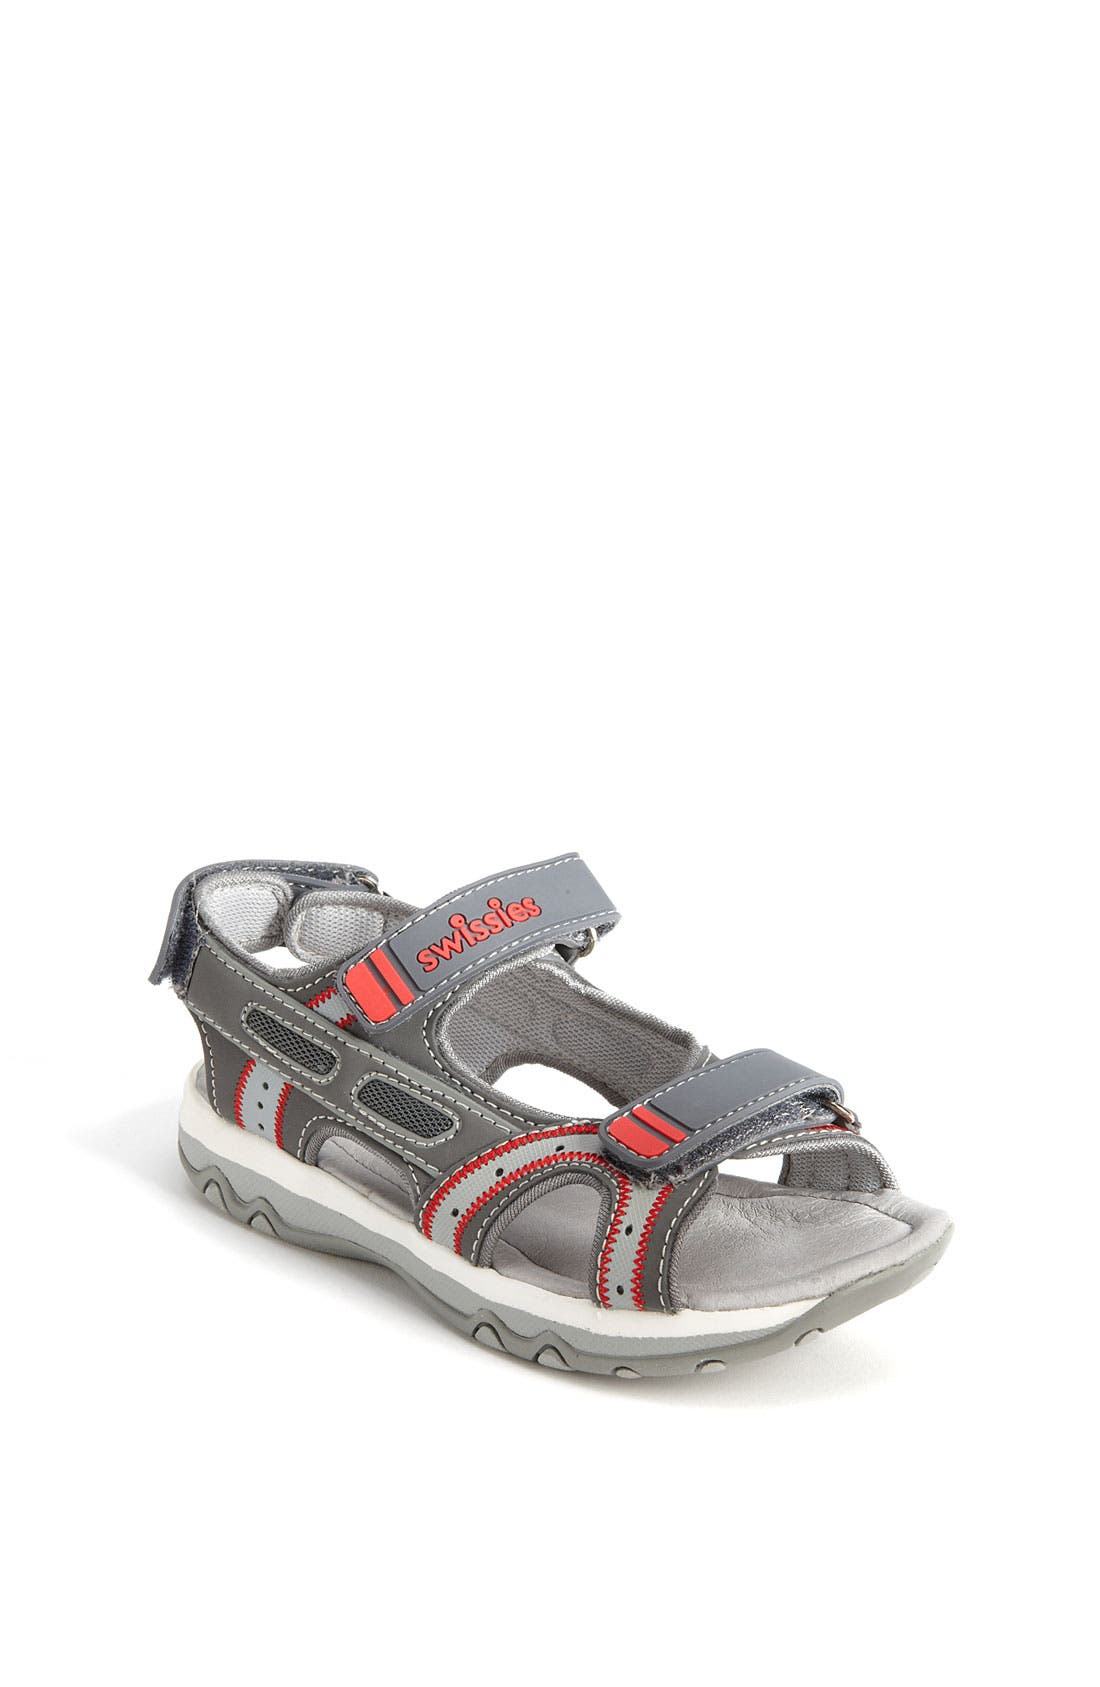 Main Image - Swissies 'Lynx' Sandal (Toddler, Little Kid & Big Kid)